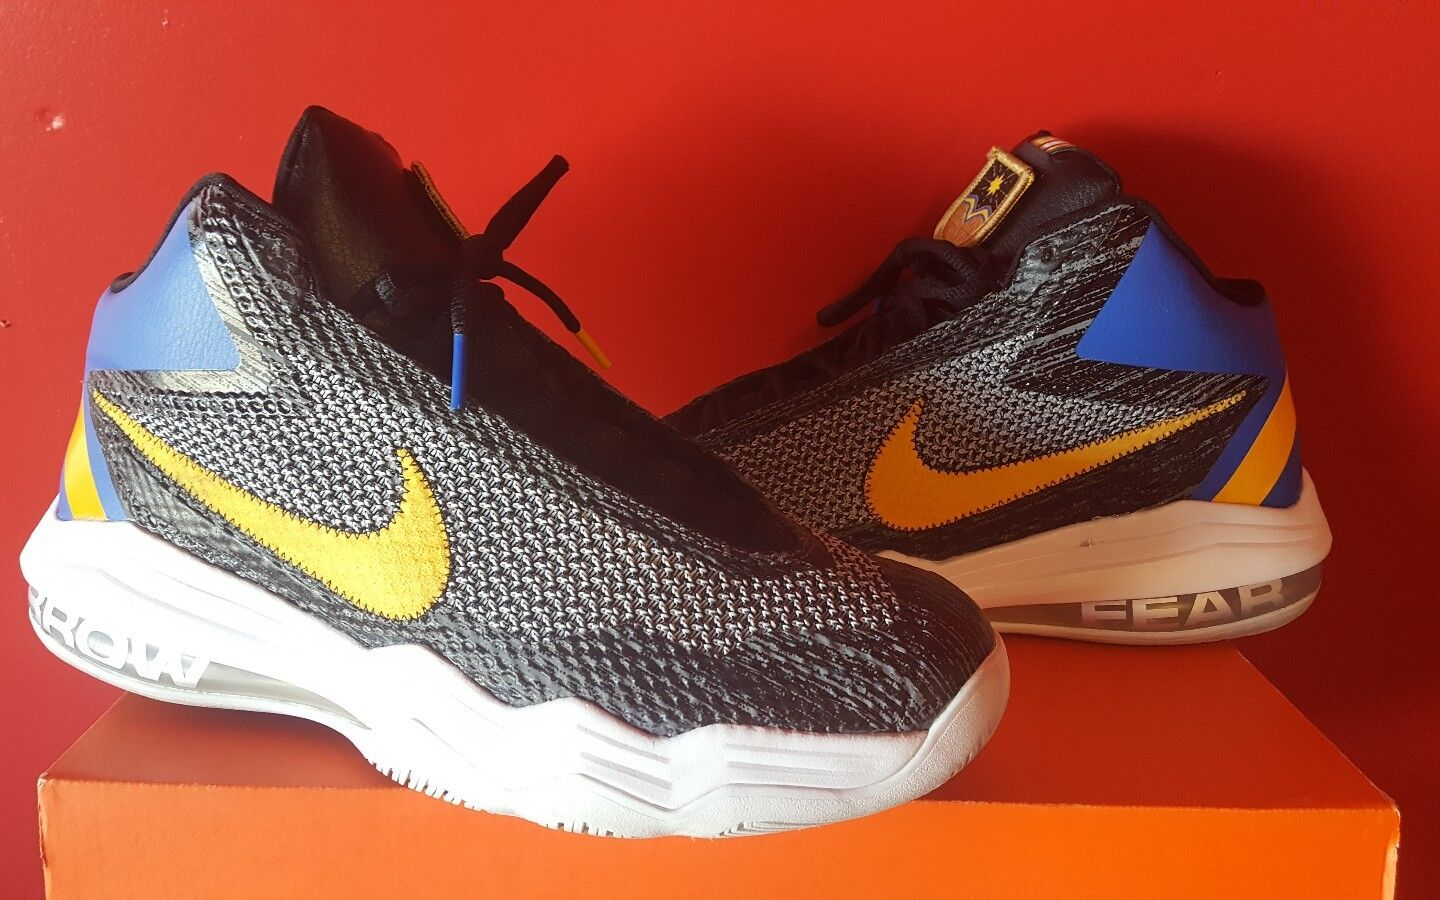 nike Air AUDACITY GOLDEN STATE WARRIORS COLORWAY Price reduction Cheap women's shoes women's shoes